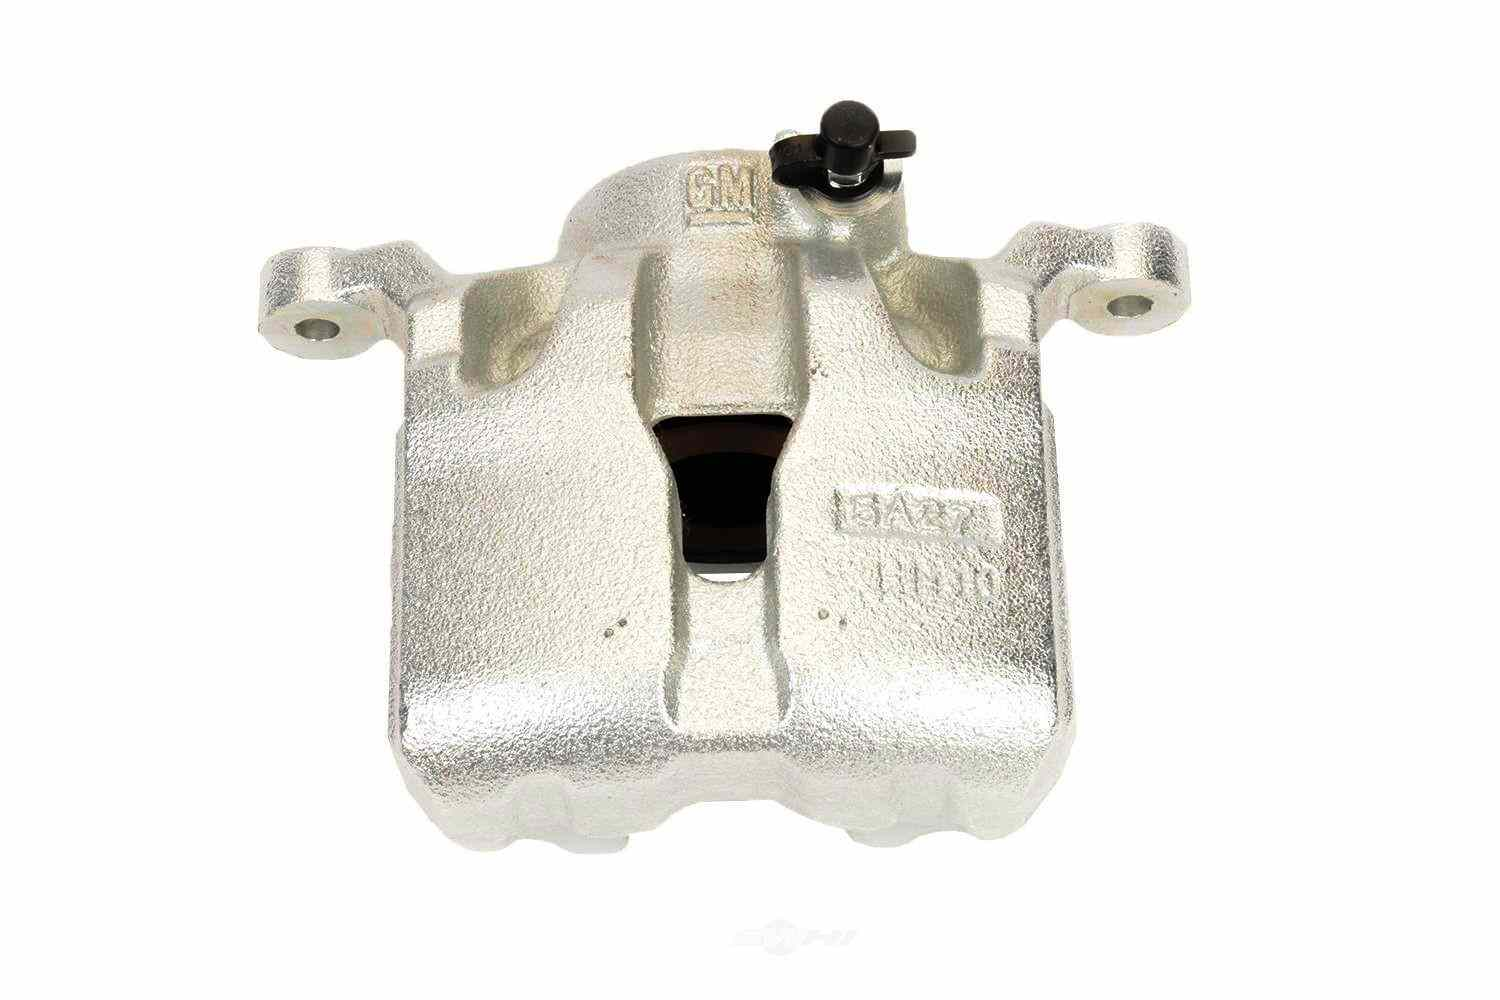 ACDELCO GM ORIGINAL EQUIPMENT - Disc Brake Caliper - DCB 13591422